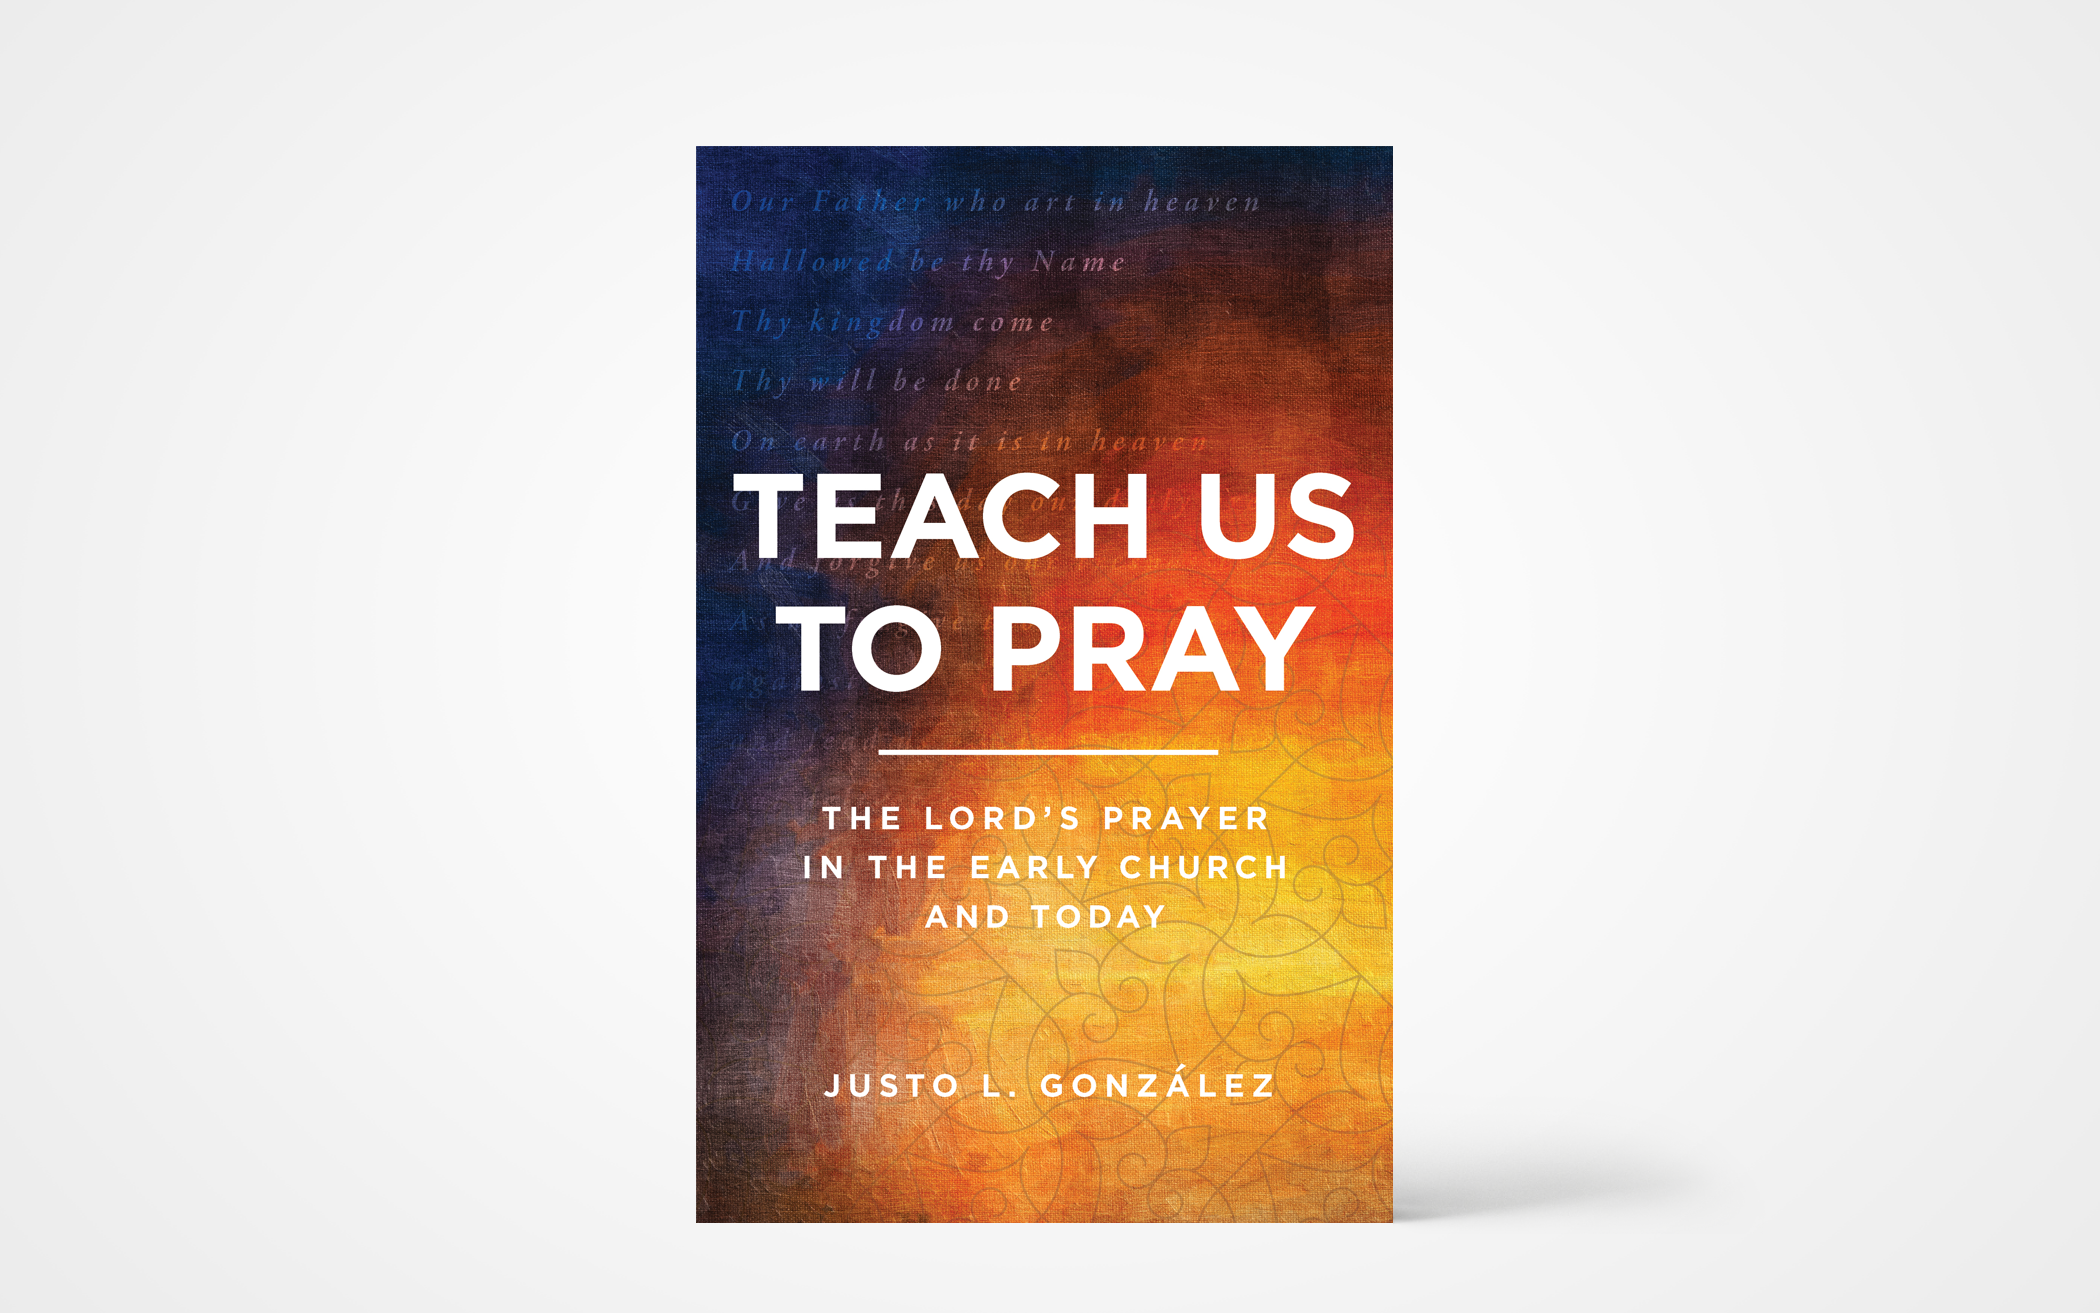 Teach Us to Pray: The Lord's Prayer in the Early Church and Today